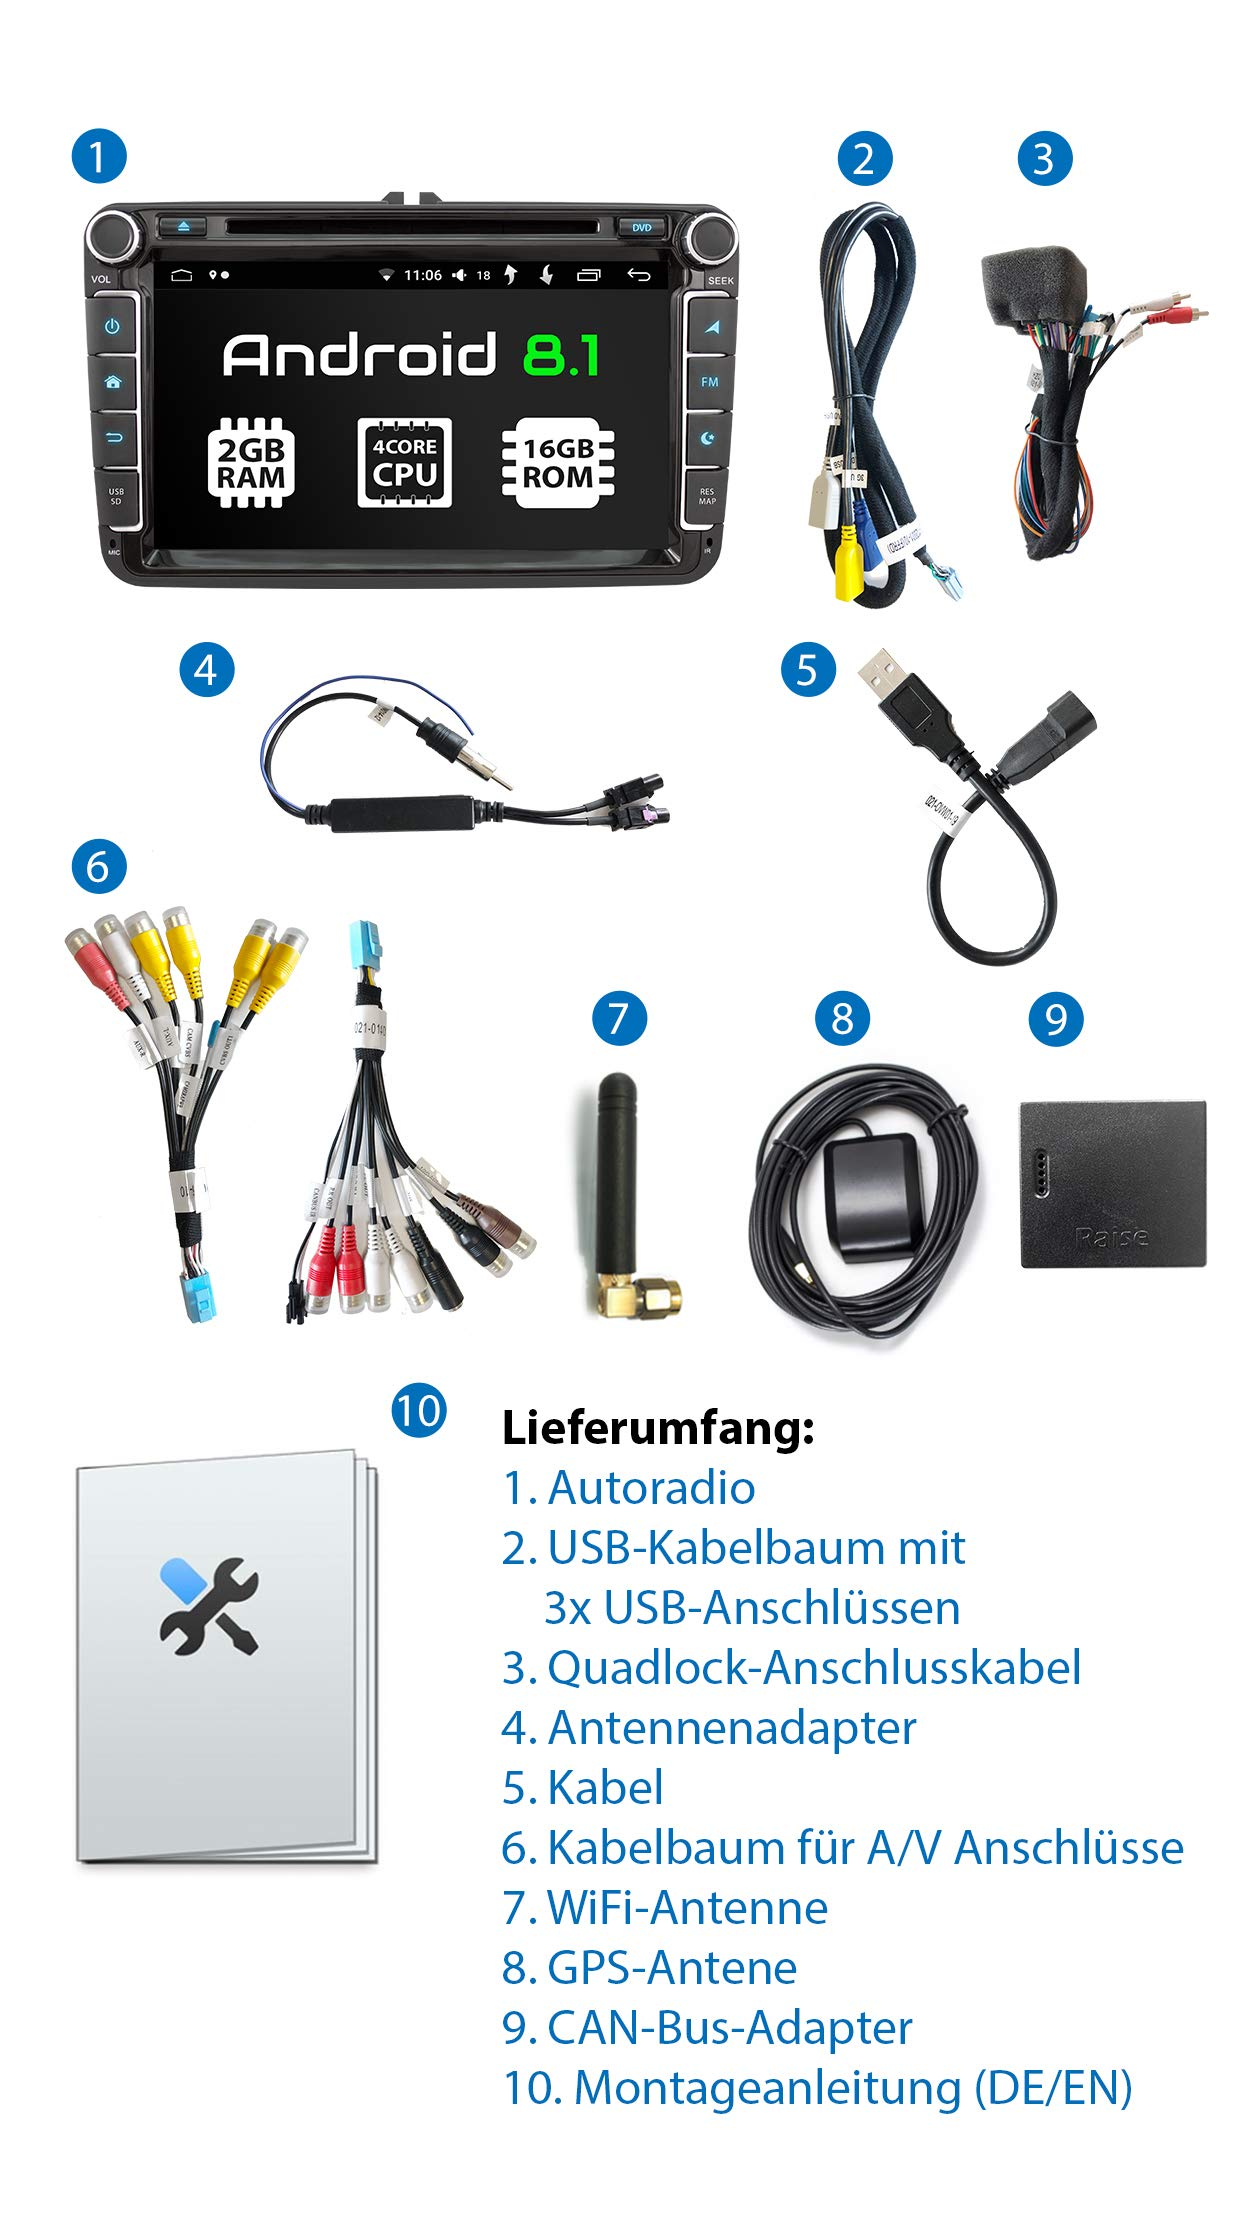 XOMAX-XM-11GA-Autoradio-passend-fr-VW-SEAT-Skoda-mit-Android-81-I-4Core-I-GPS-Navigation-I-DVD-CD-USB-SD-I-Support-WiFi-4G-DAB-OBD2-I-Bluetooth-I-8-Zoll-203-cm-Touchscreen